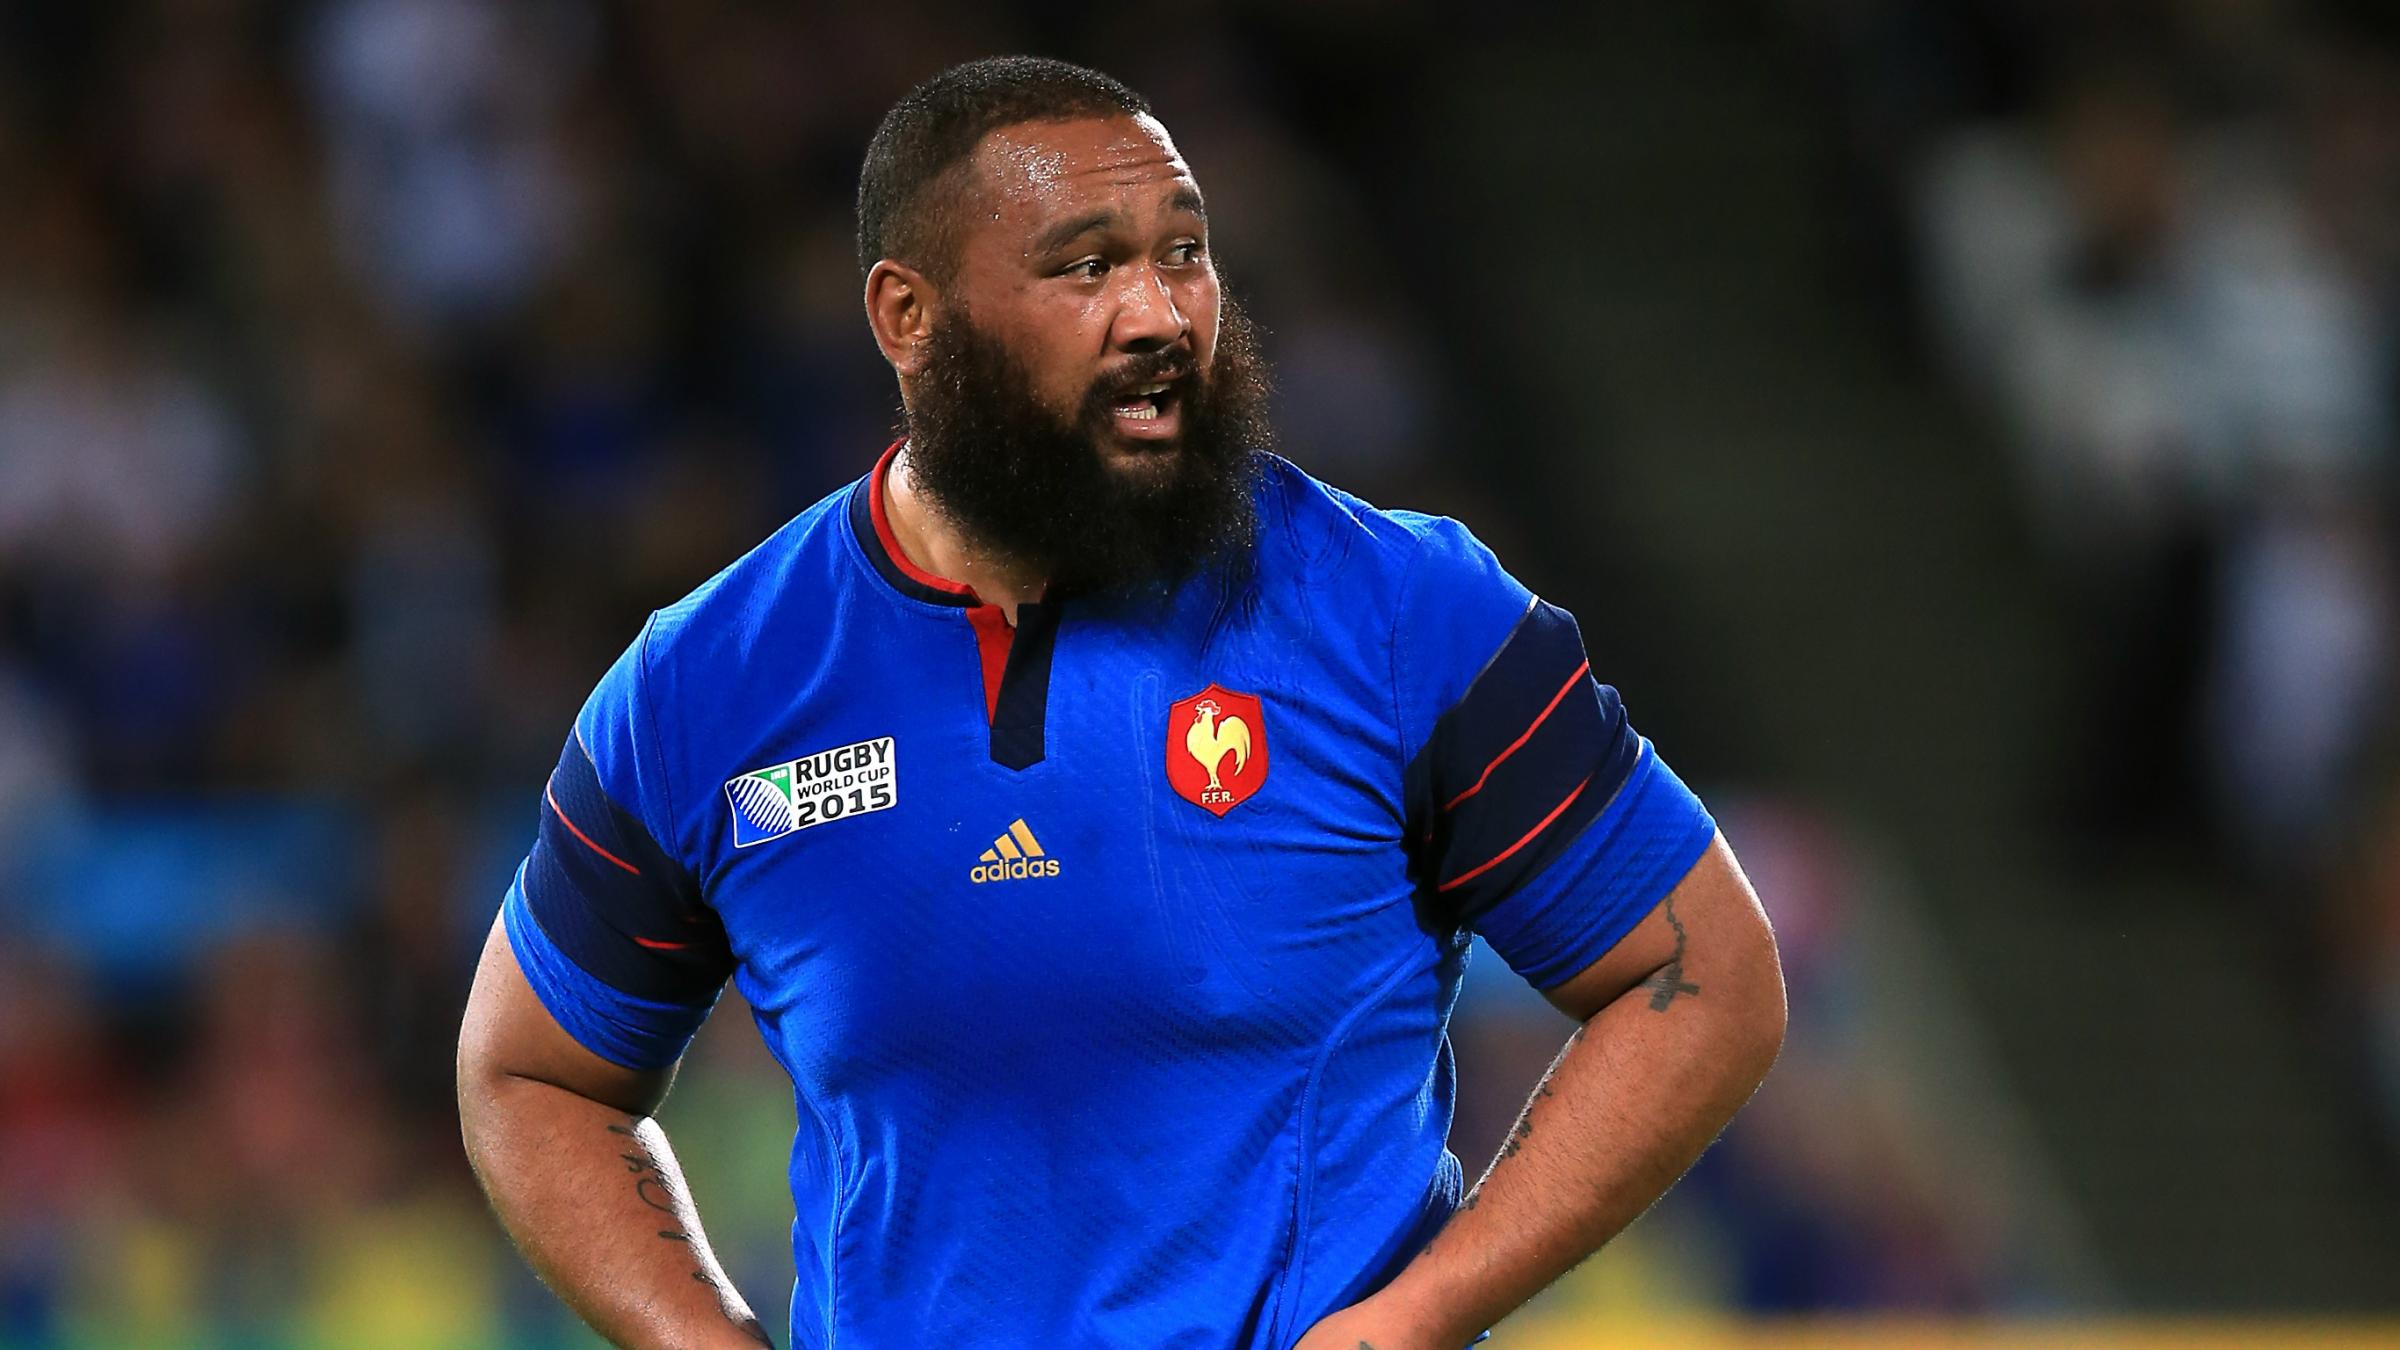 France reprimanded in replacements row